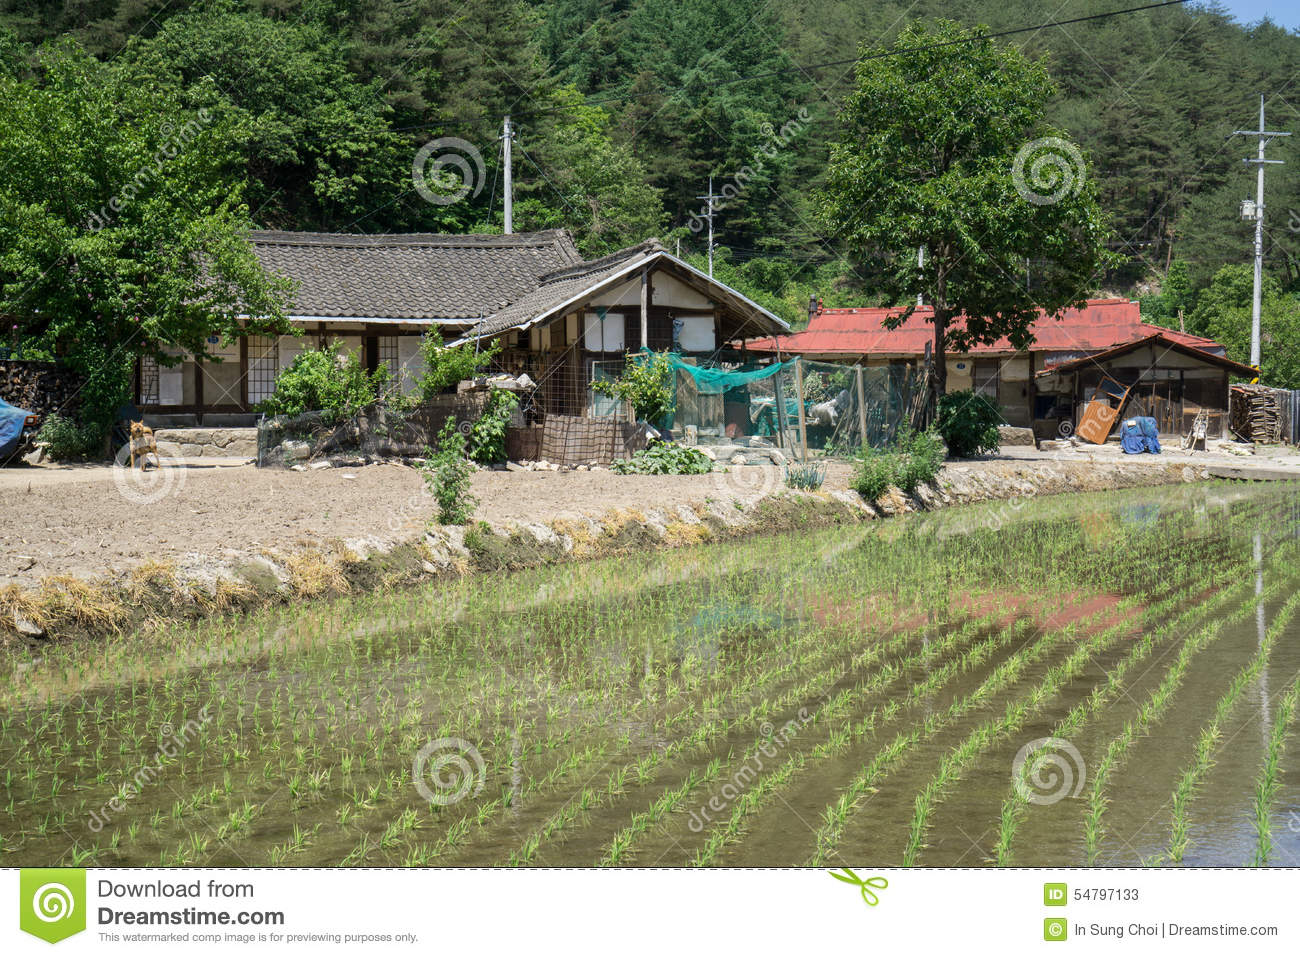 house design in south korea with Stock Photo Country Farmhouse Traditional Korean Farm House Small Rice Paddy Out Front Taken Gangneung South Korea Hot Image54797133 on Gallery likewise Asos Headquarters Morey Smith also Stock Photos Korean Old Buildings Outside Inside Image23252133 further Rainbow 6 operator idea from yellowthekid and art furthermore Stock Illustration Gyeongbokgung Symbol Seoul Korea Retro Rubber St  Image58344517.